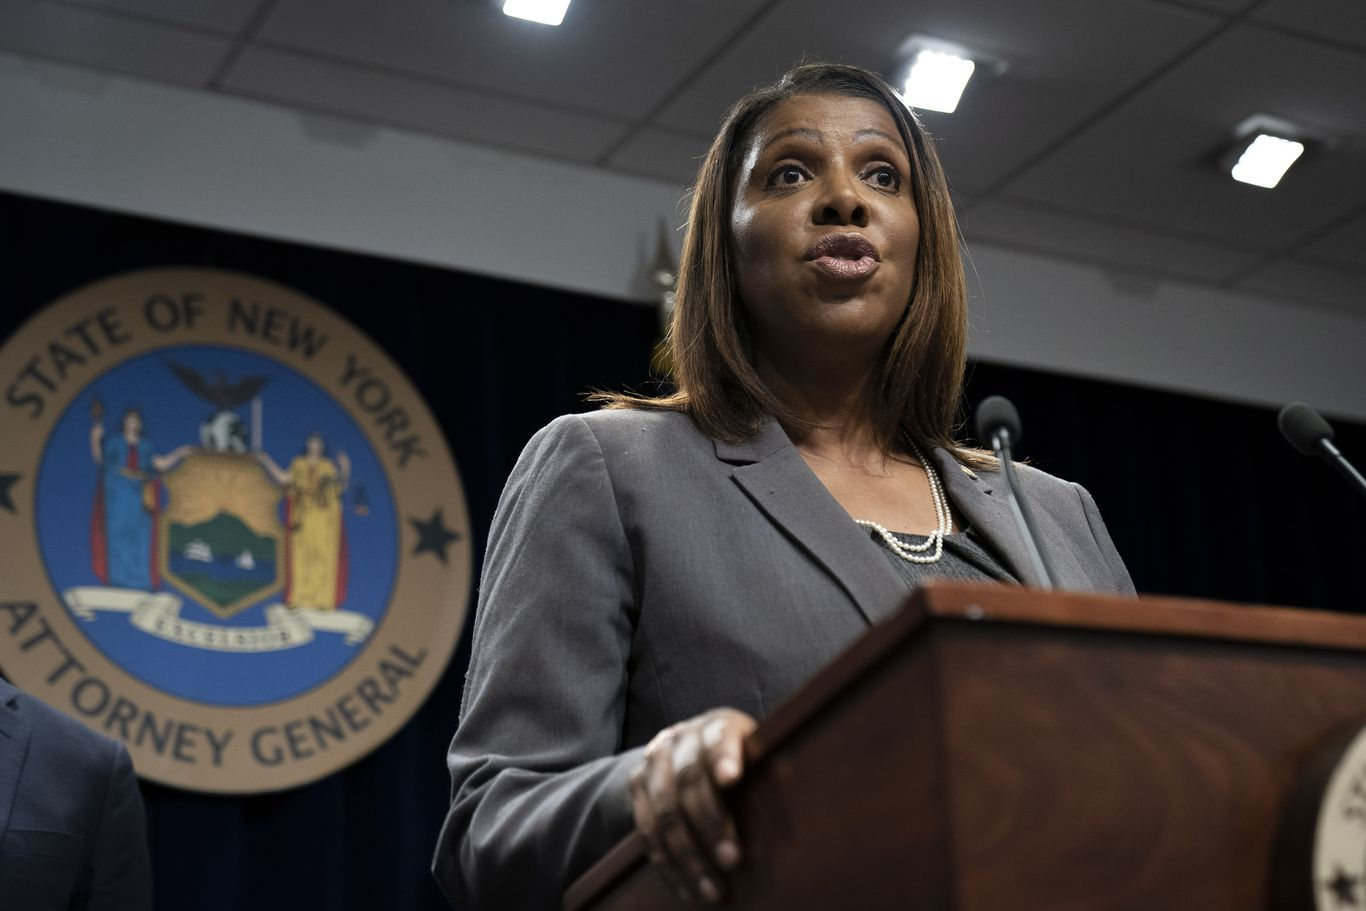 New York attorney general will release body cam footage in police shootings